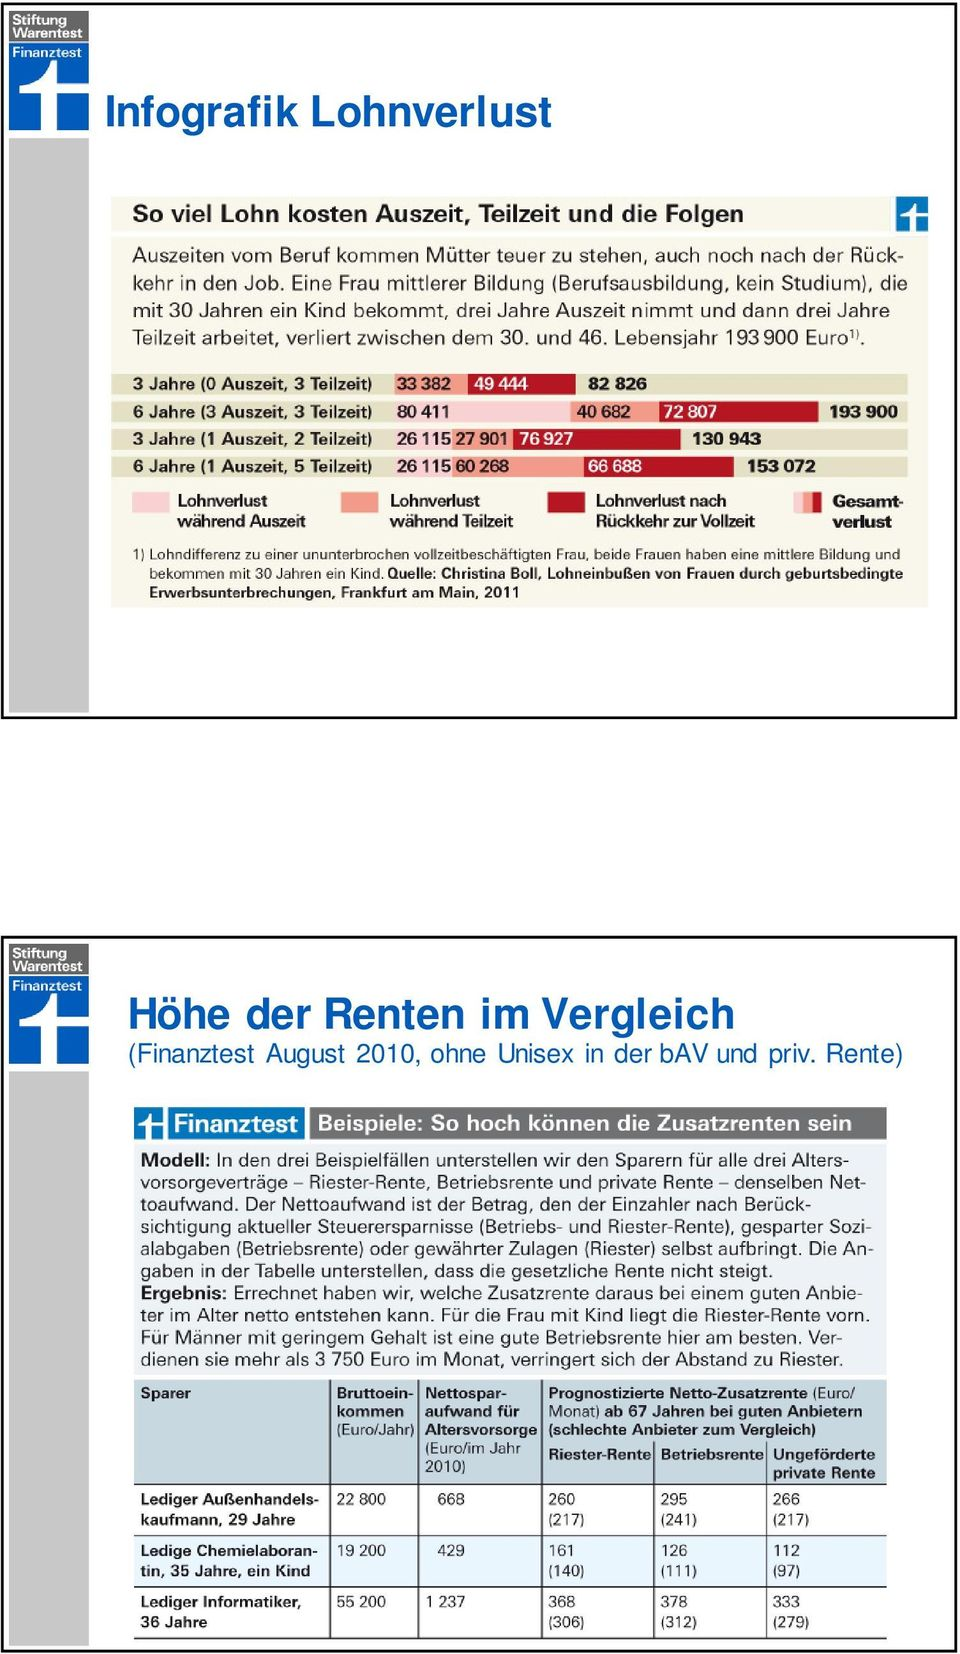 (Finanztest August 2010, ohne